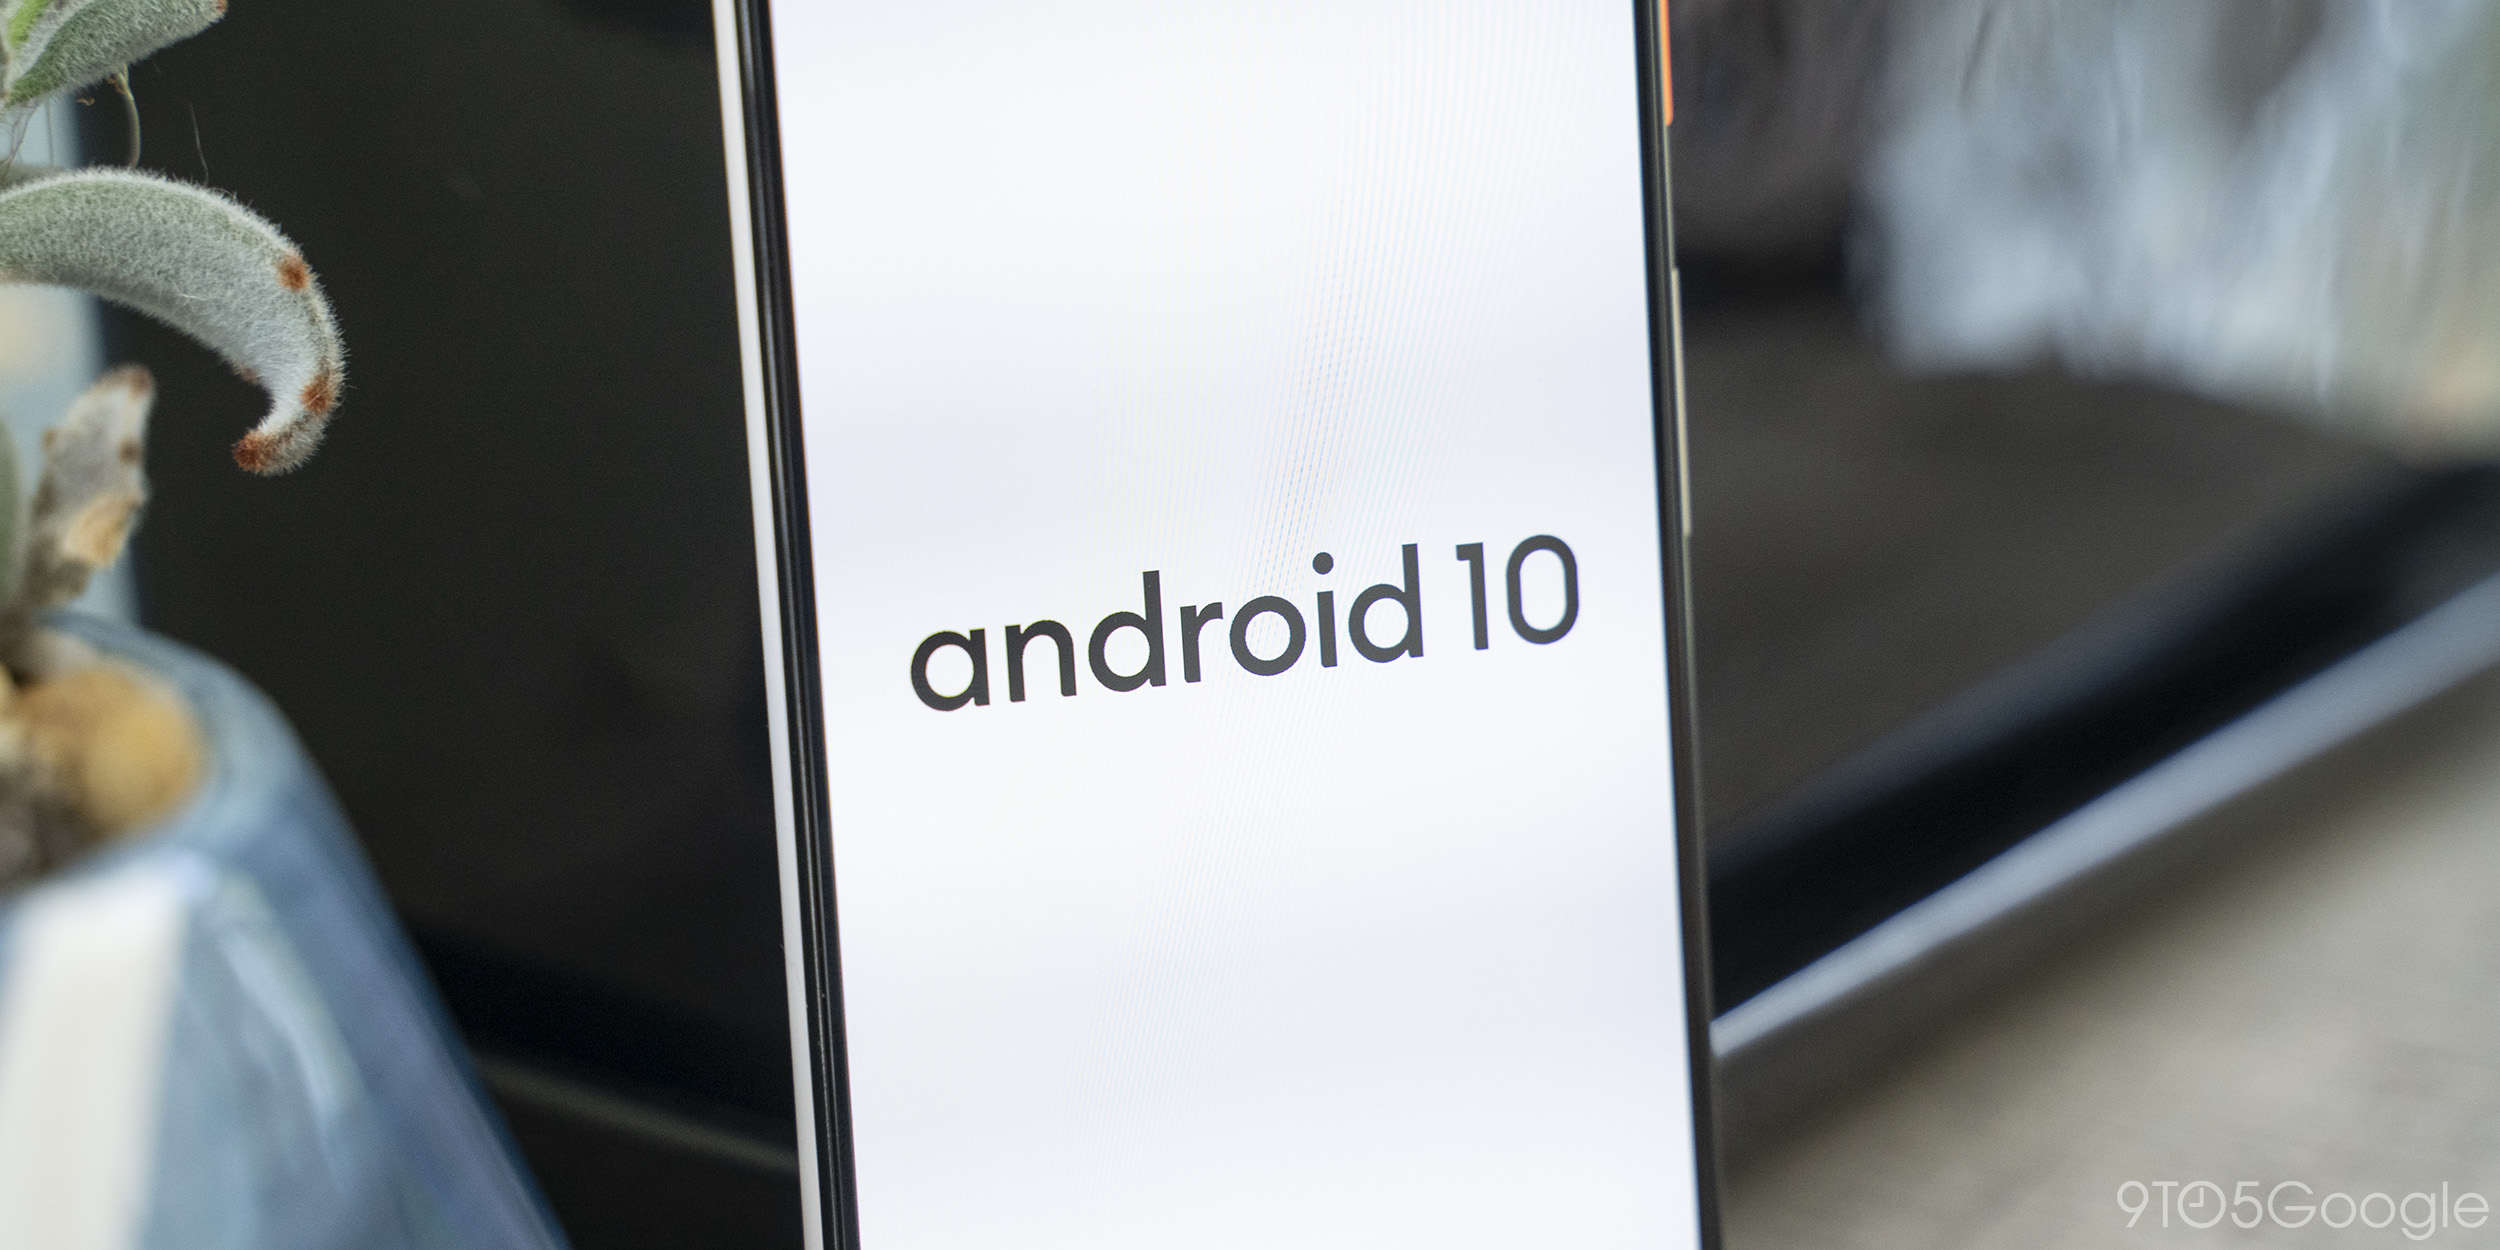 Canadian carrier Rogers says Android 10 is rolling out to Pixels on September 3